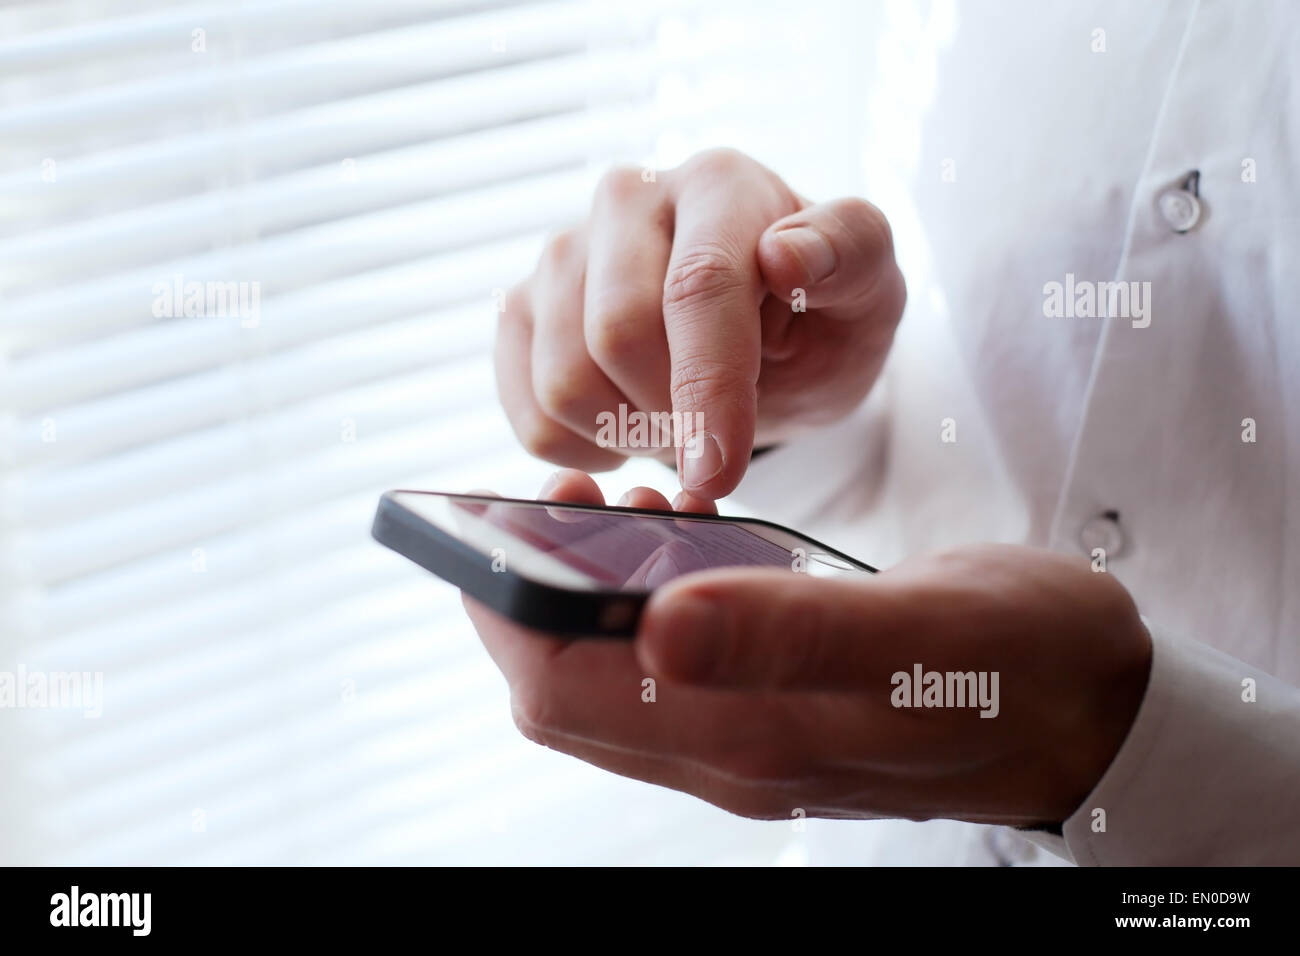 Business man using smartphone Photo Stock